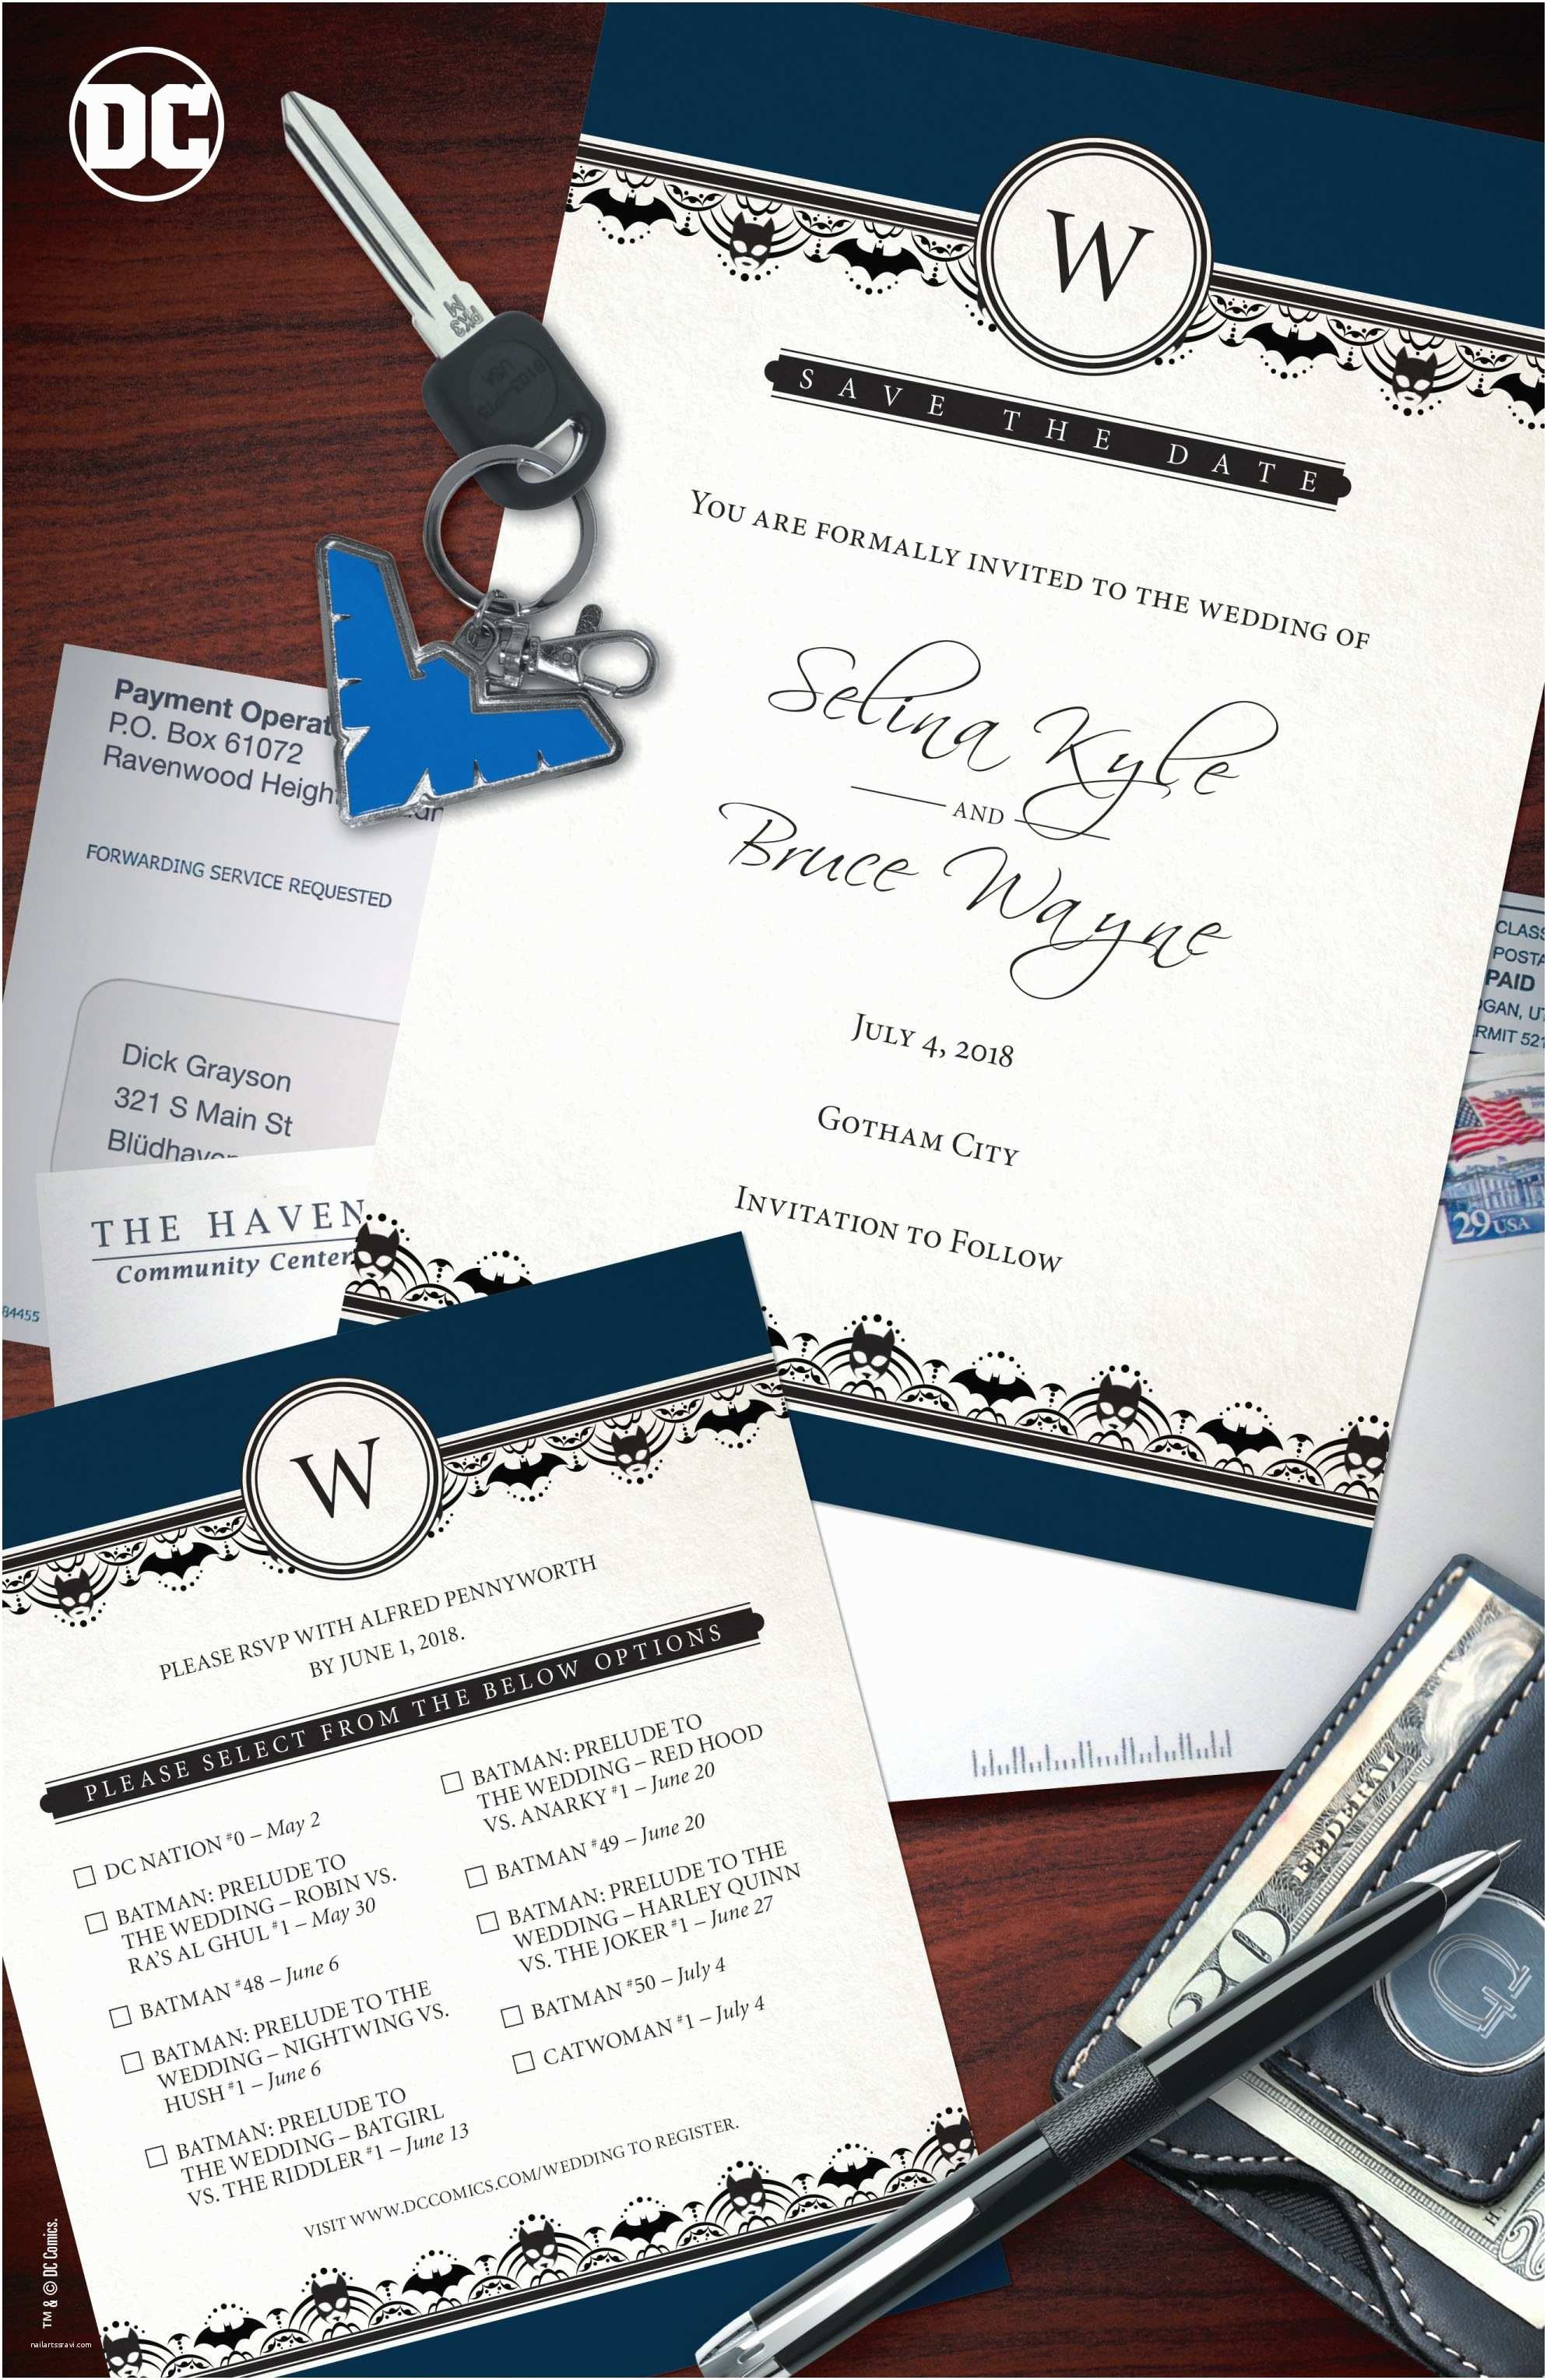 Batman Wedding Invitations Dc Ics Releases New House Ad for Batman & Catwoman